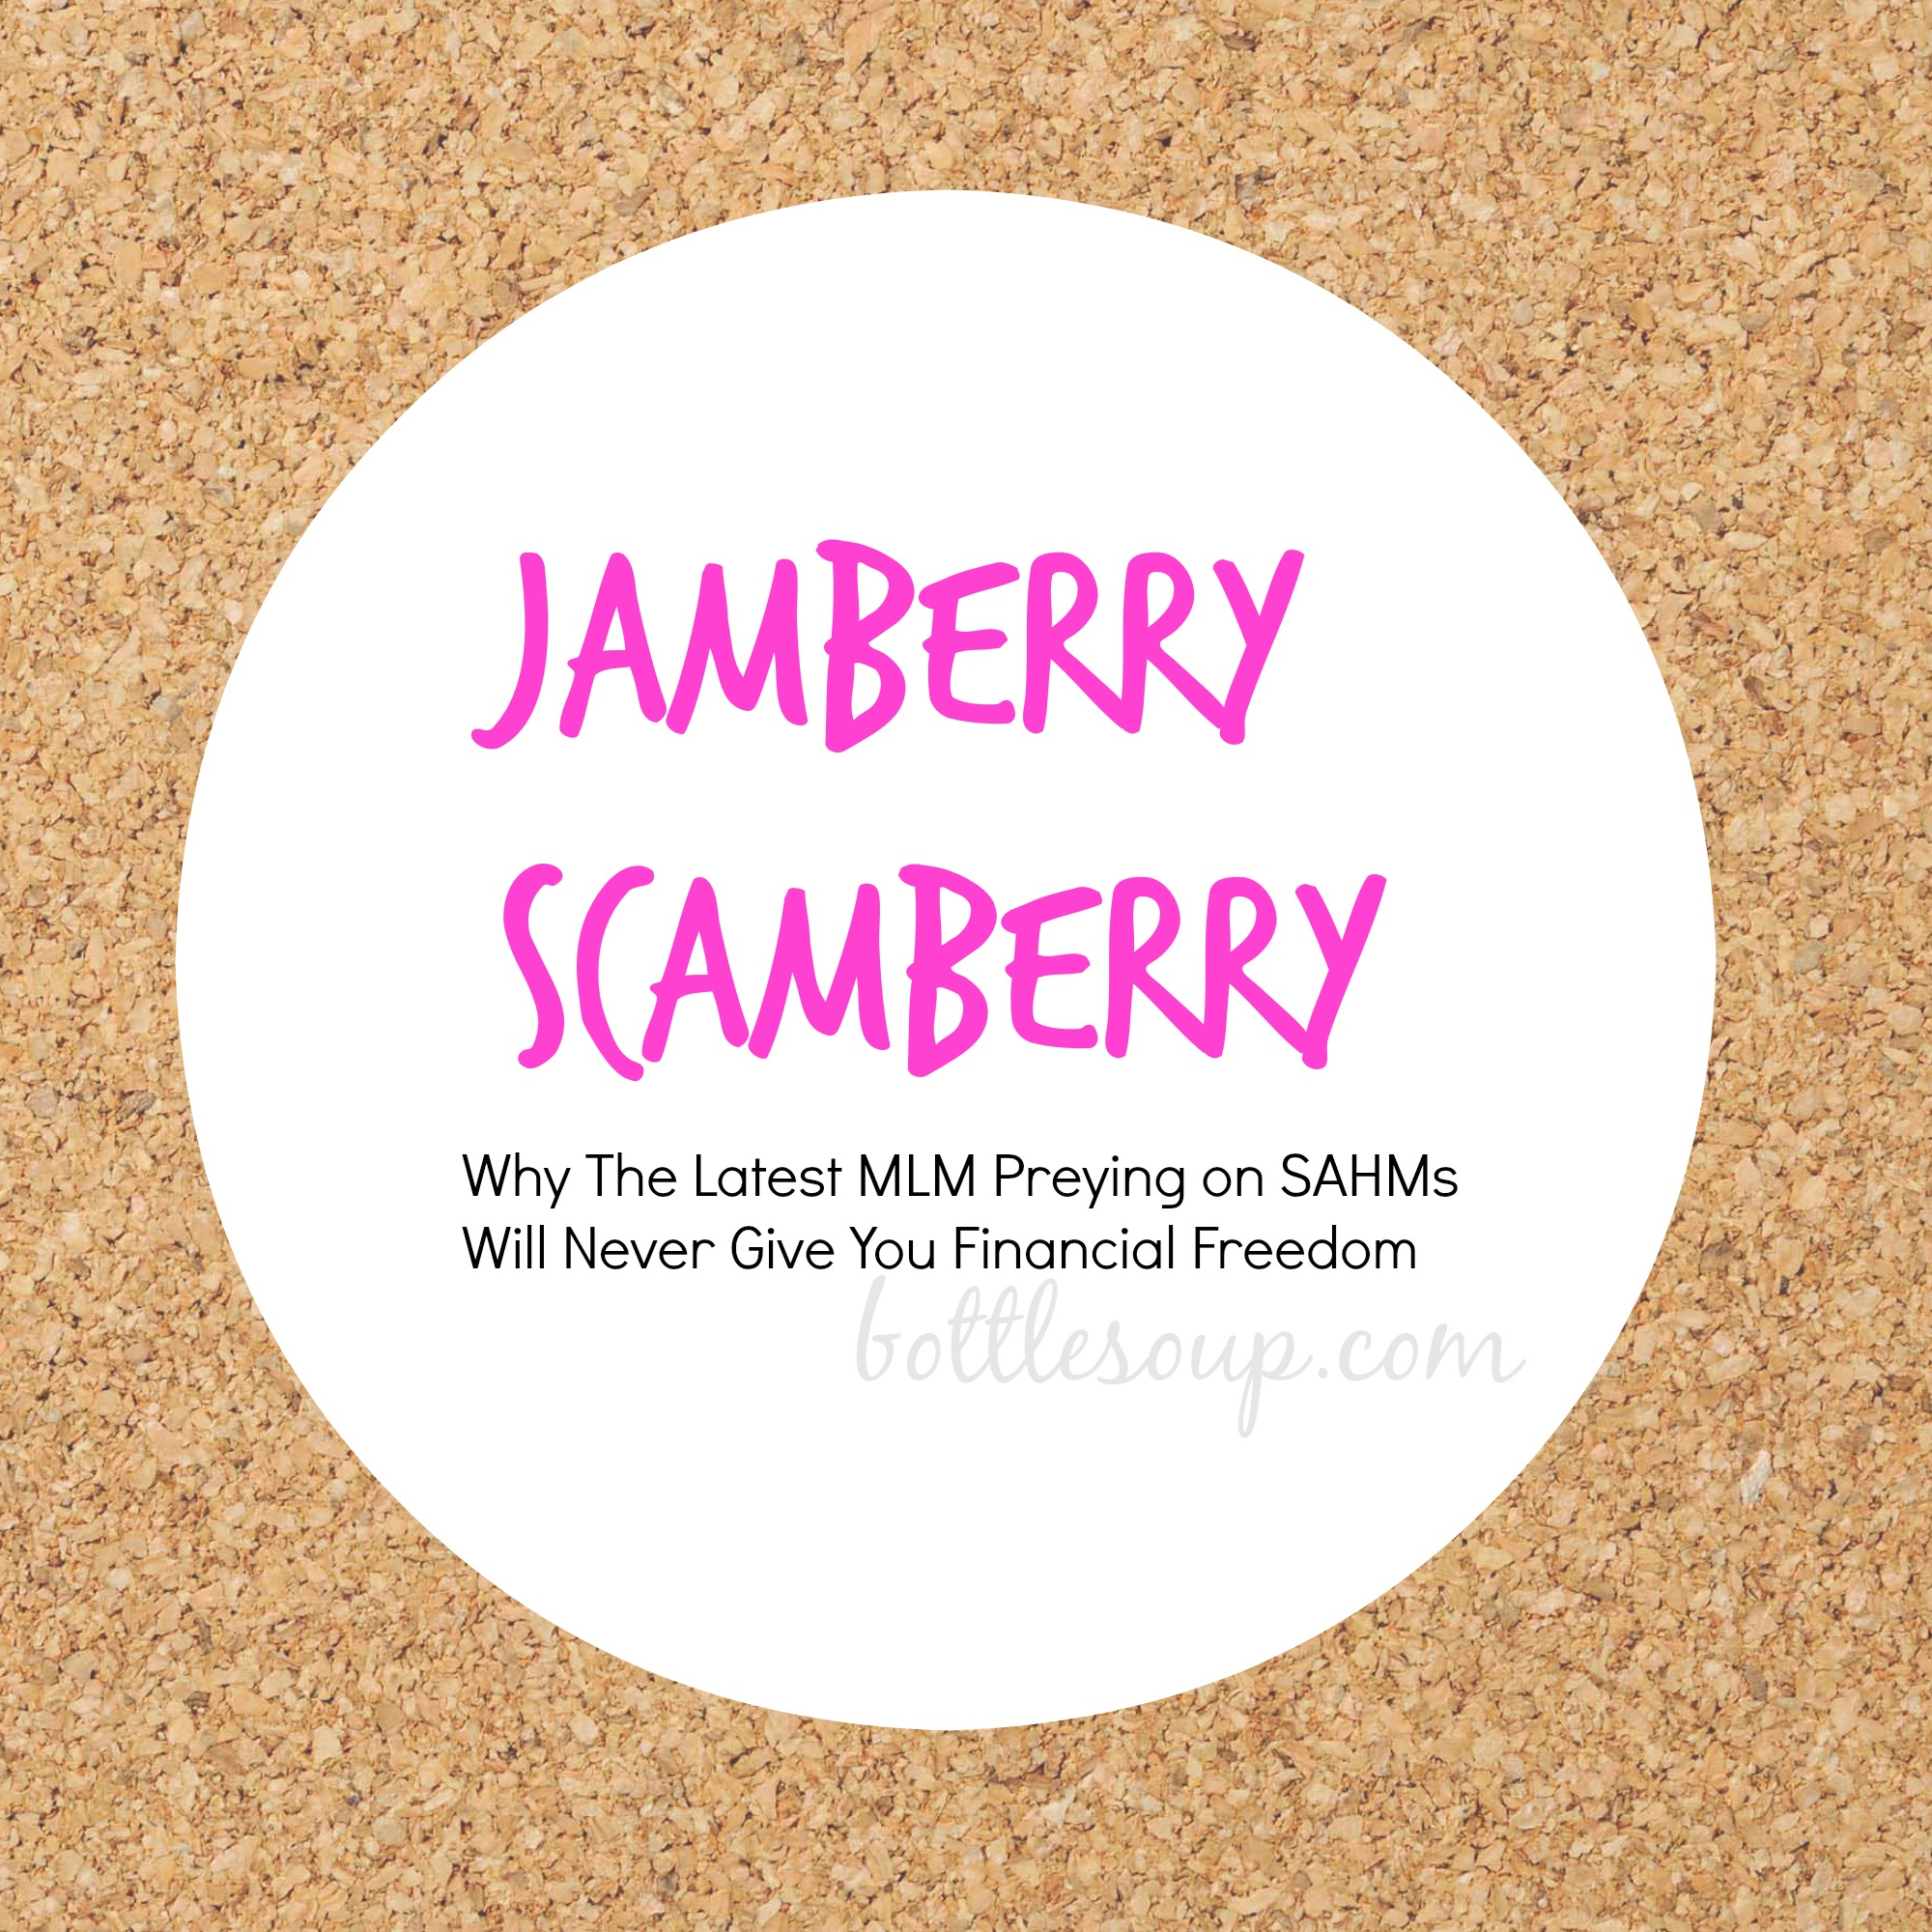 jamberryscamberry